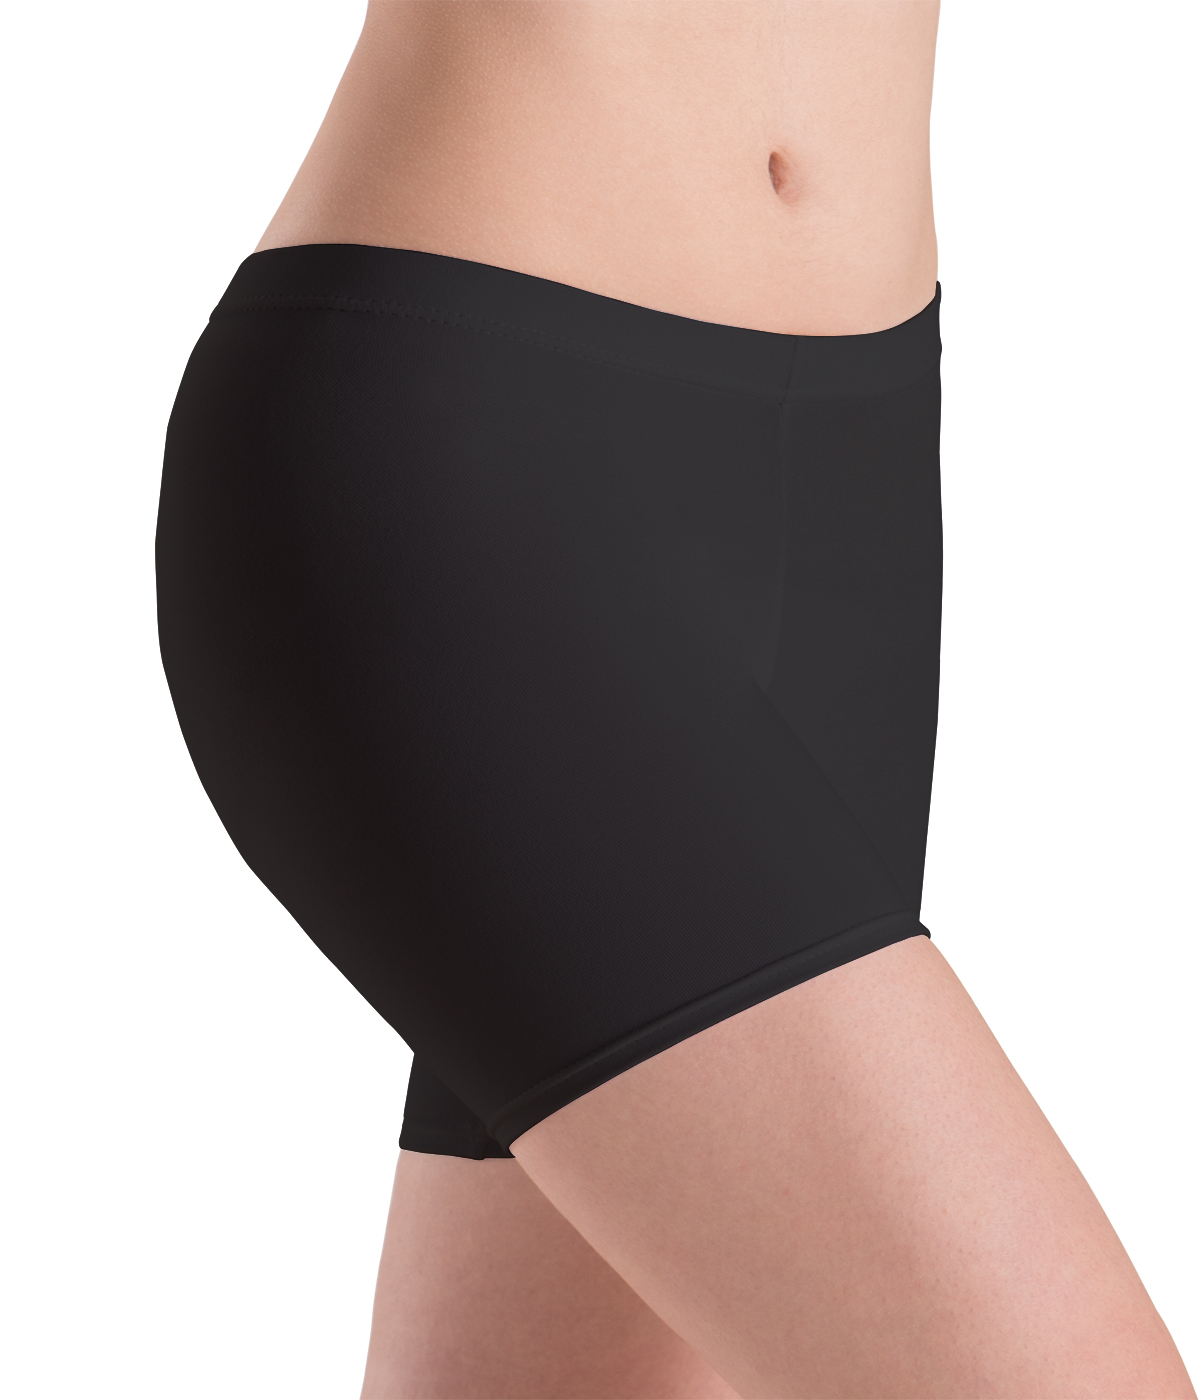 biker shorts black lower rise bike shorts ... cmvonff